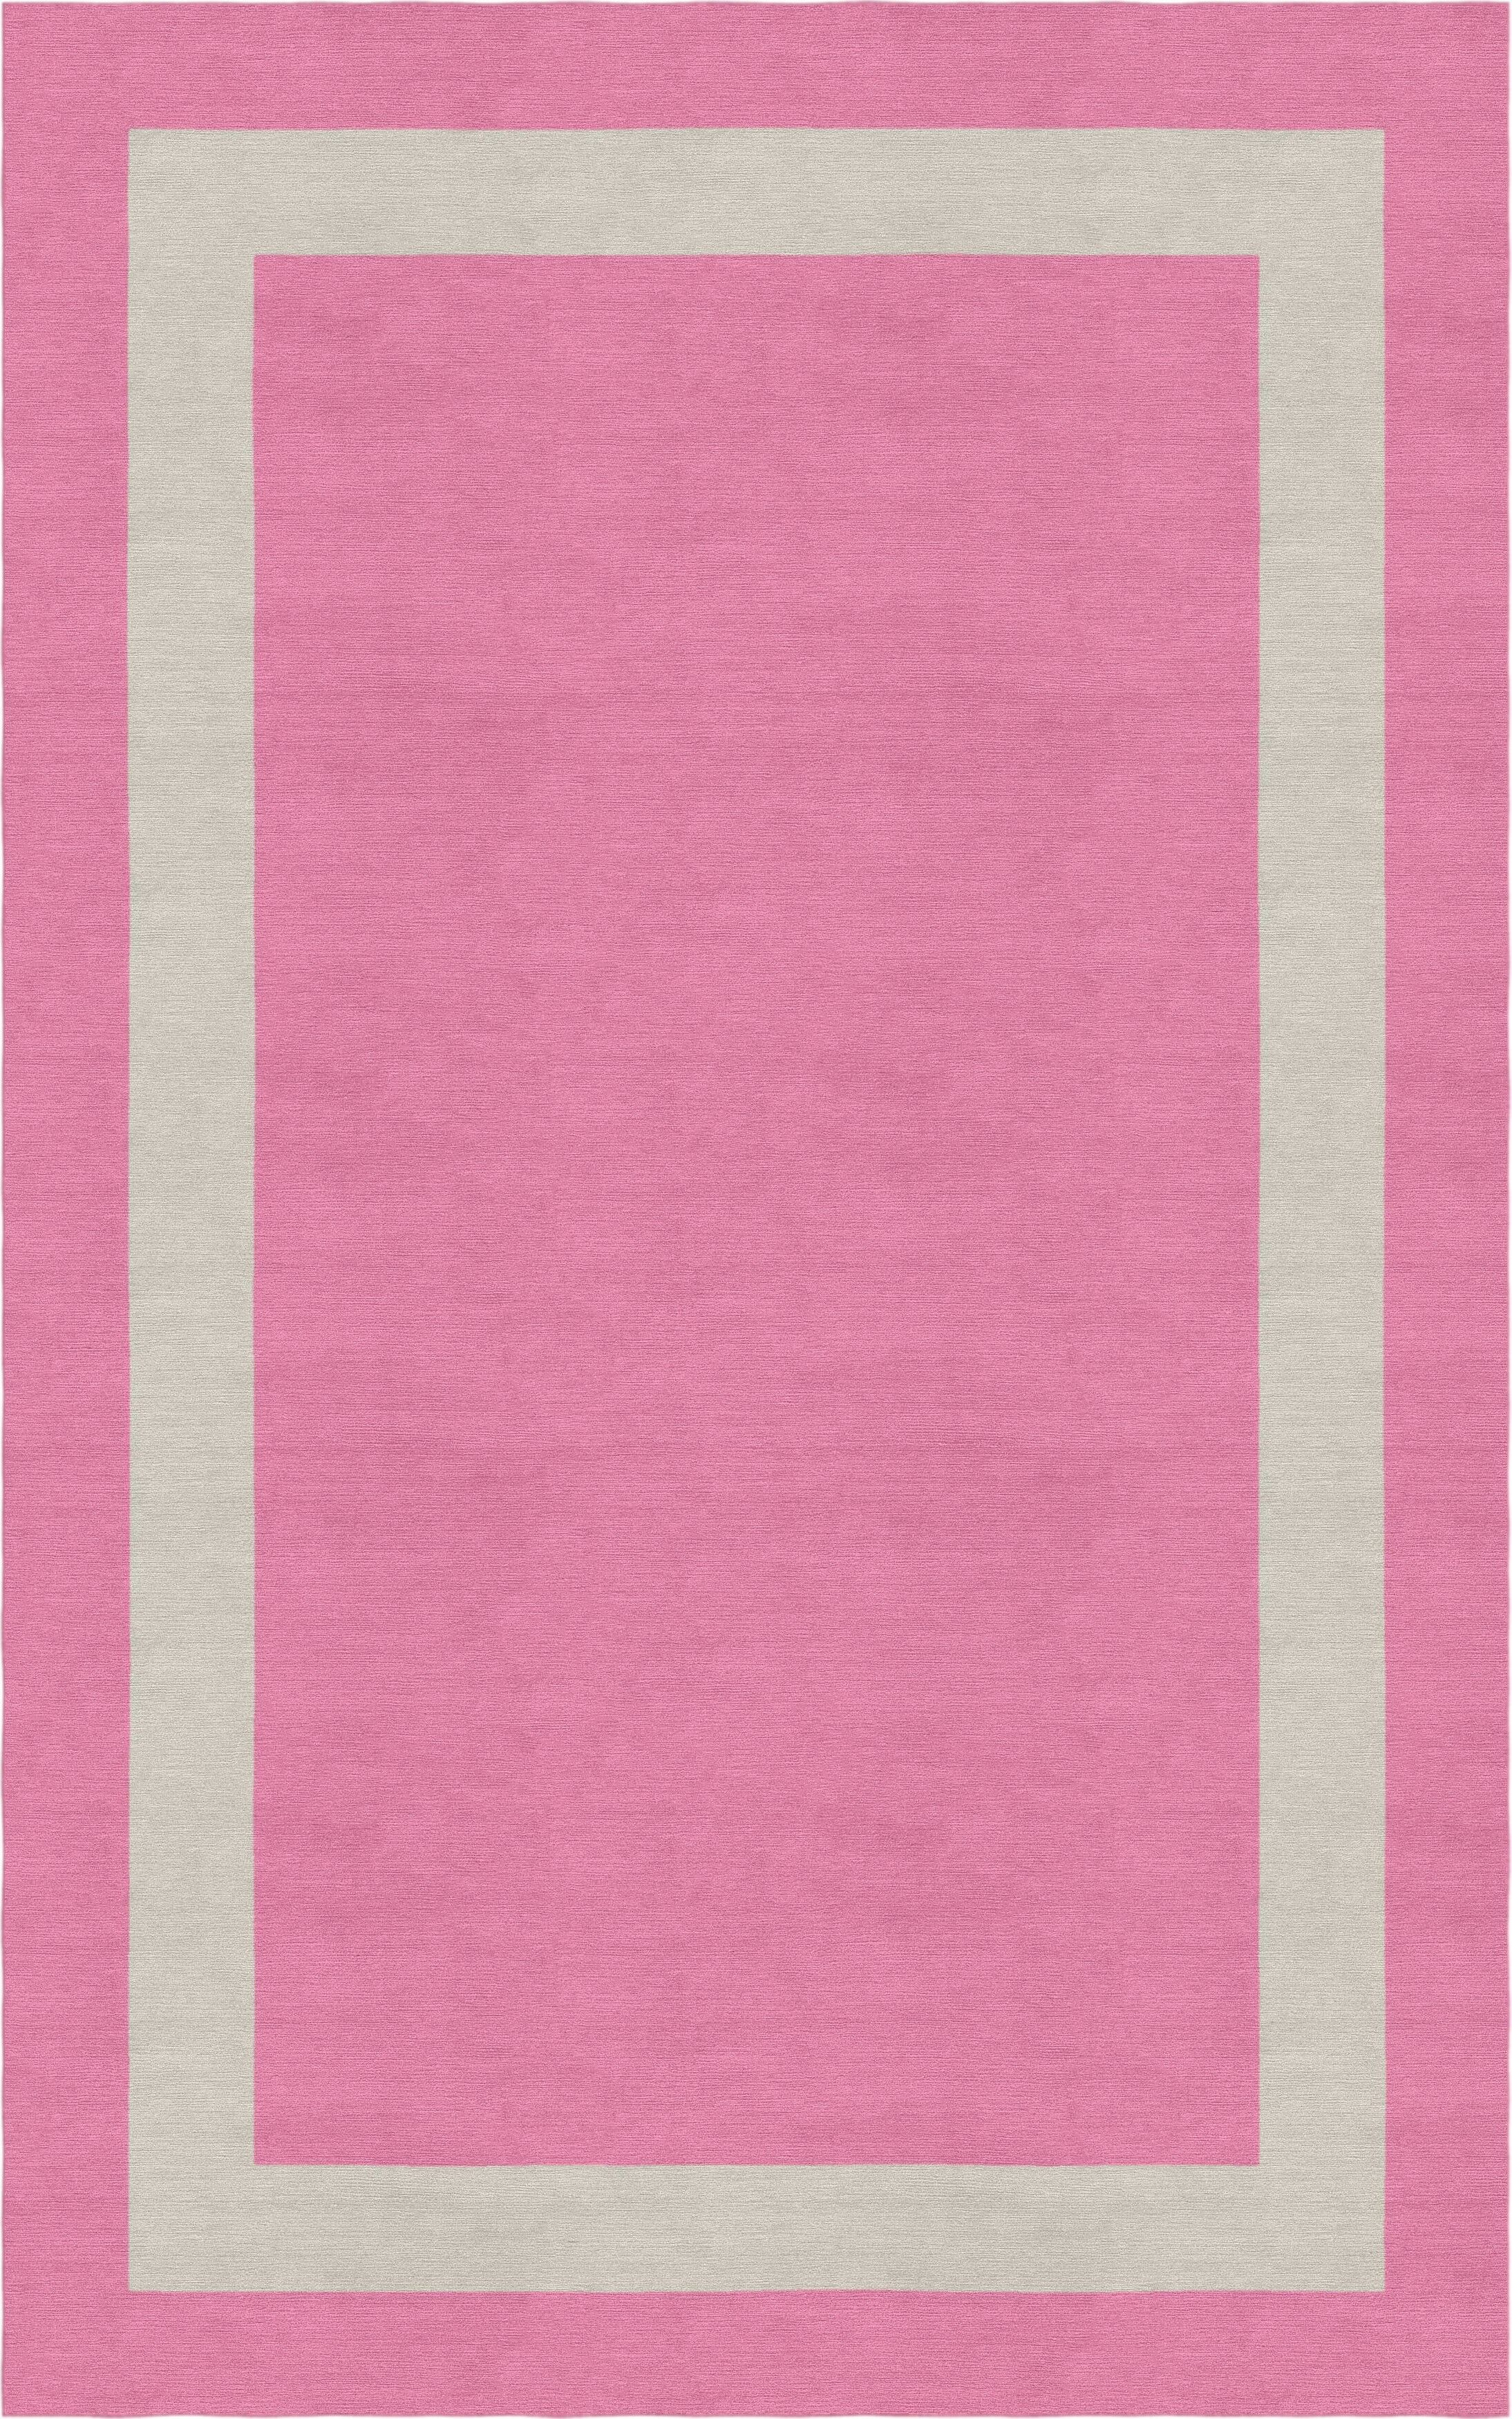 Meidell Border Hand-Tufted Wool Pink/Silver Area Rug Rug Size: Rectangle 8' x 10'